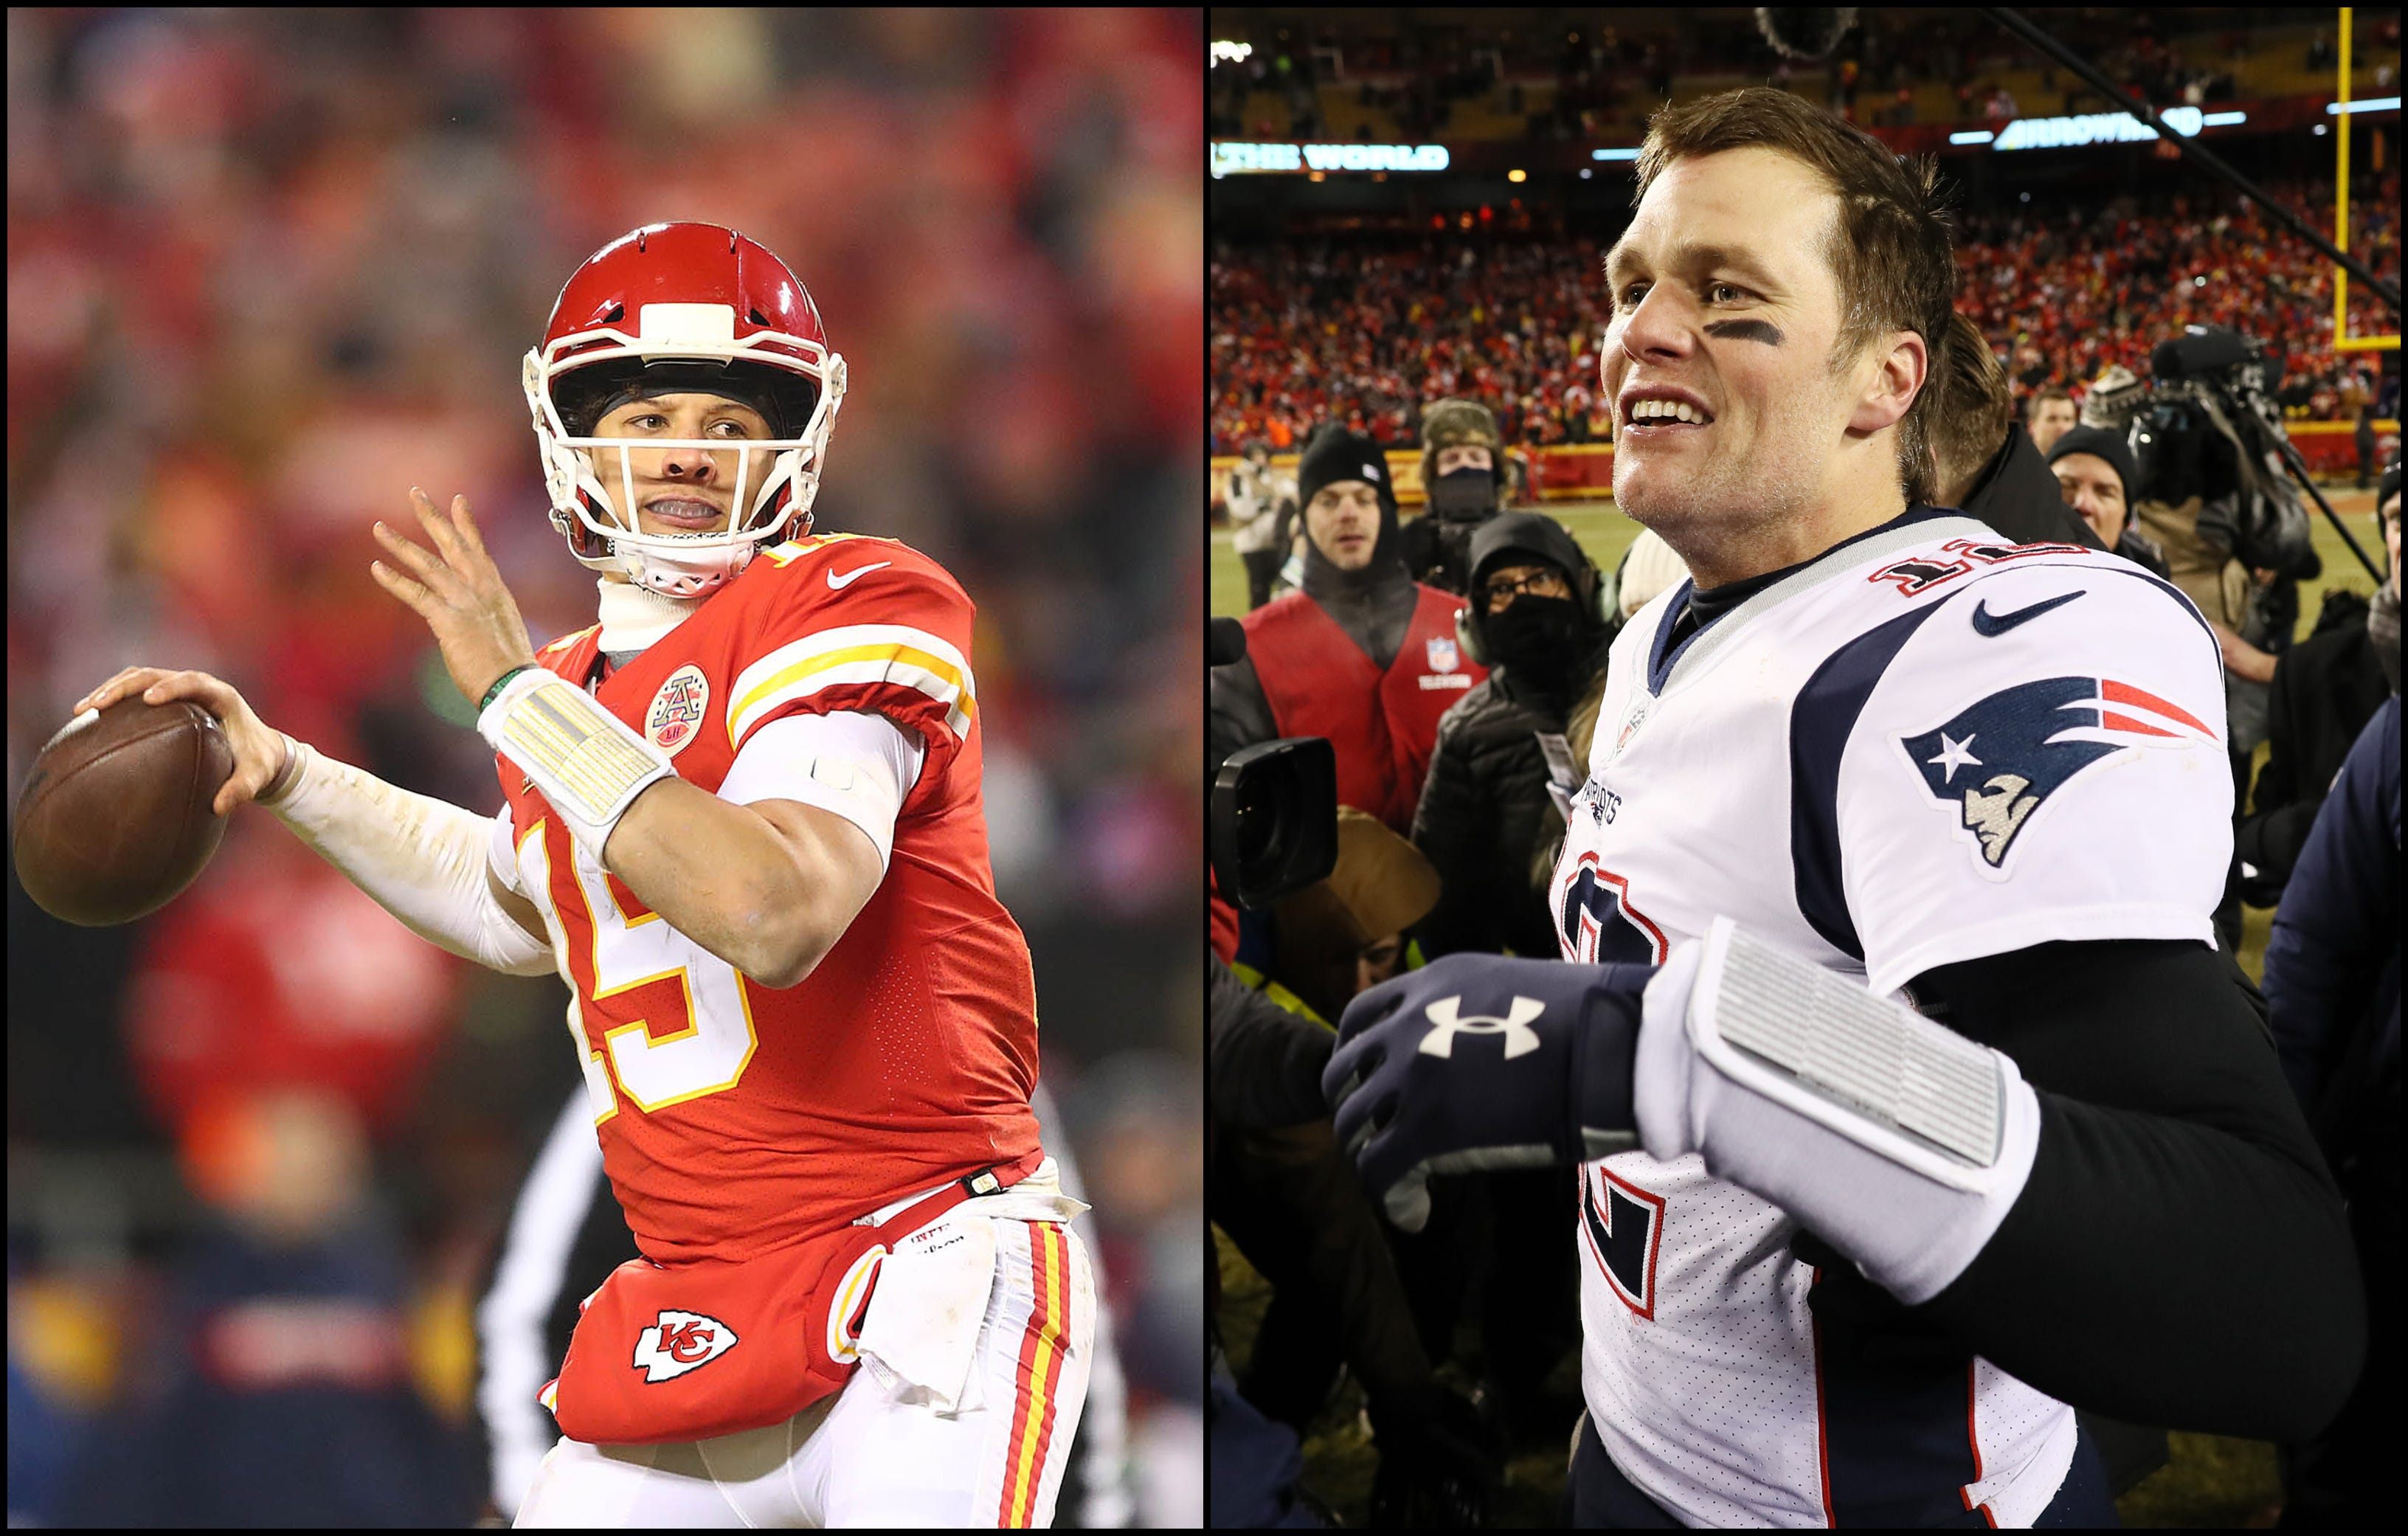 Patrick Mahomes shares what Tom Brady told him in the postgame visit